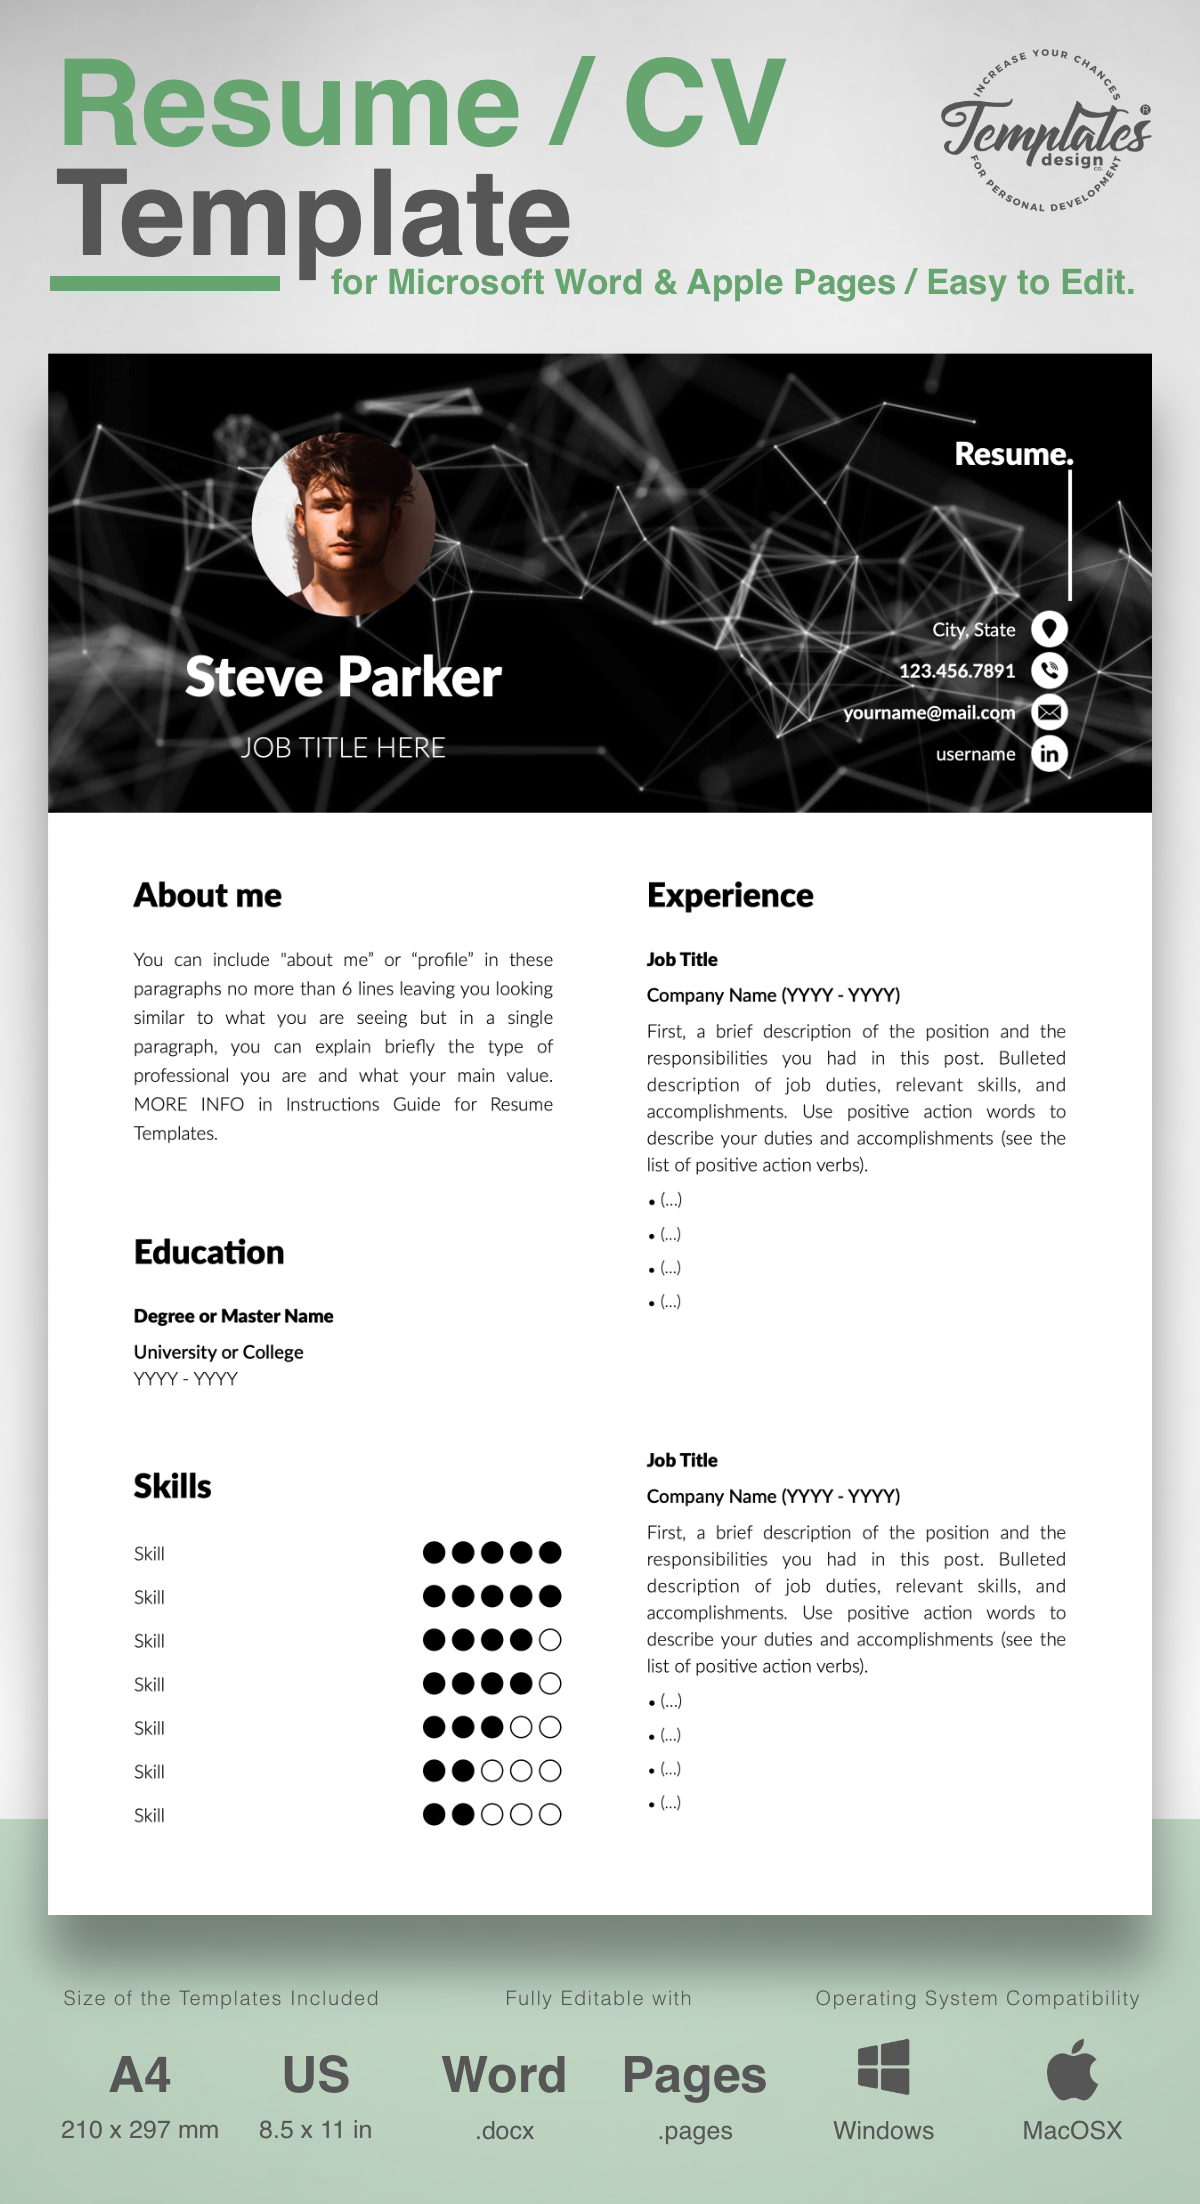 Steve Parker Creative Resume Cv Template For Word Pages Us Letter A4 Files 1 2 3 Page Resume Version Cover Letter References Cover Letter Wi Resume Cv Resume Cv Template